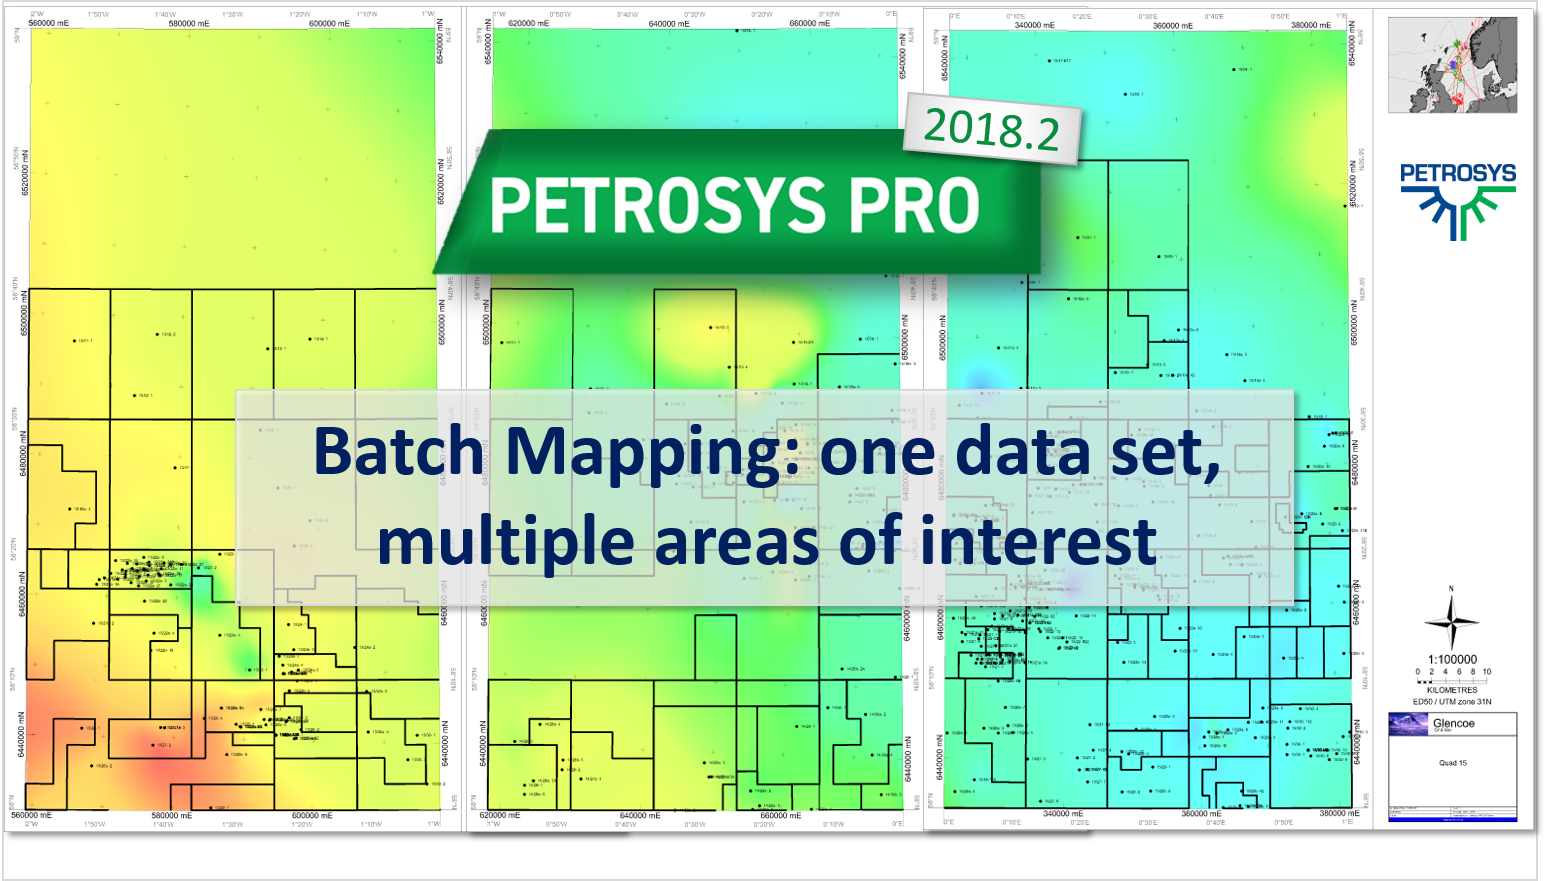 Batch Mapping: one data set, multiple areas of interest